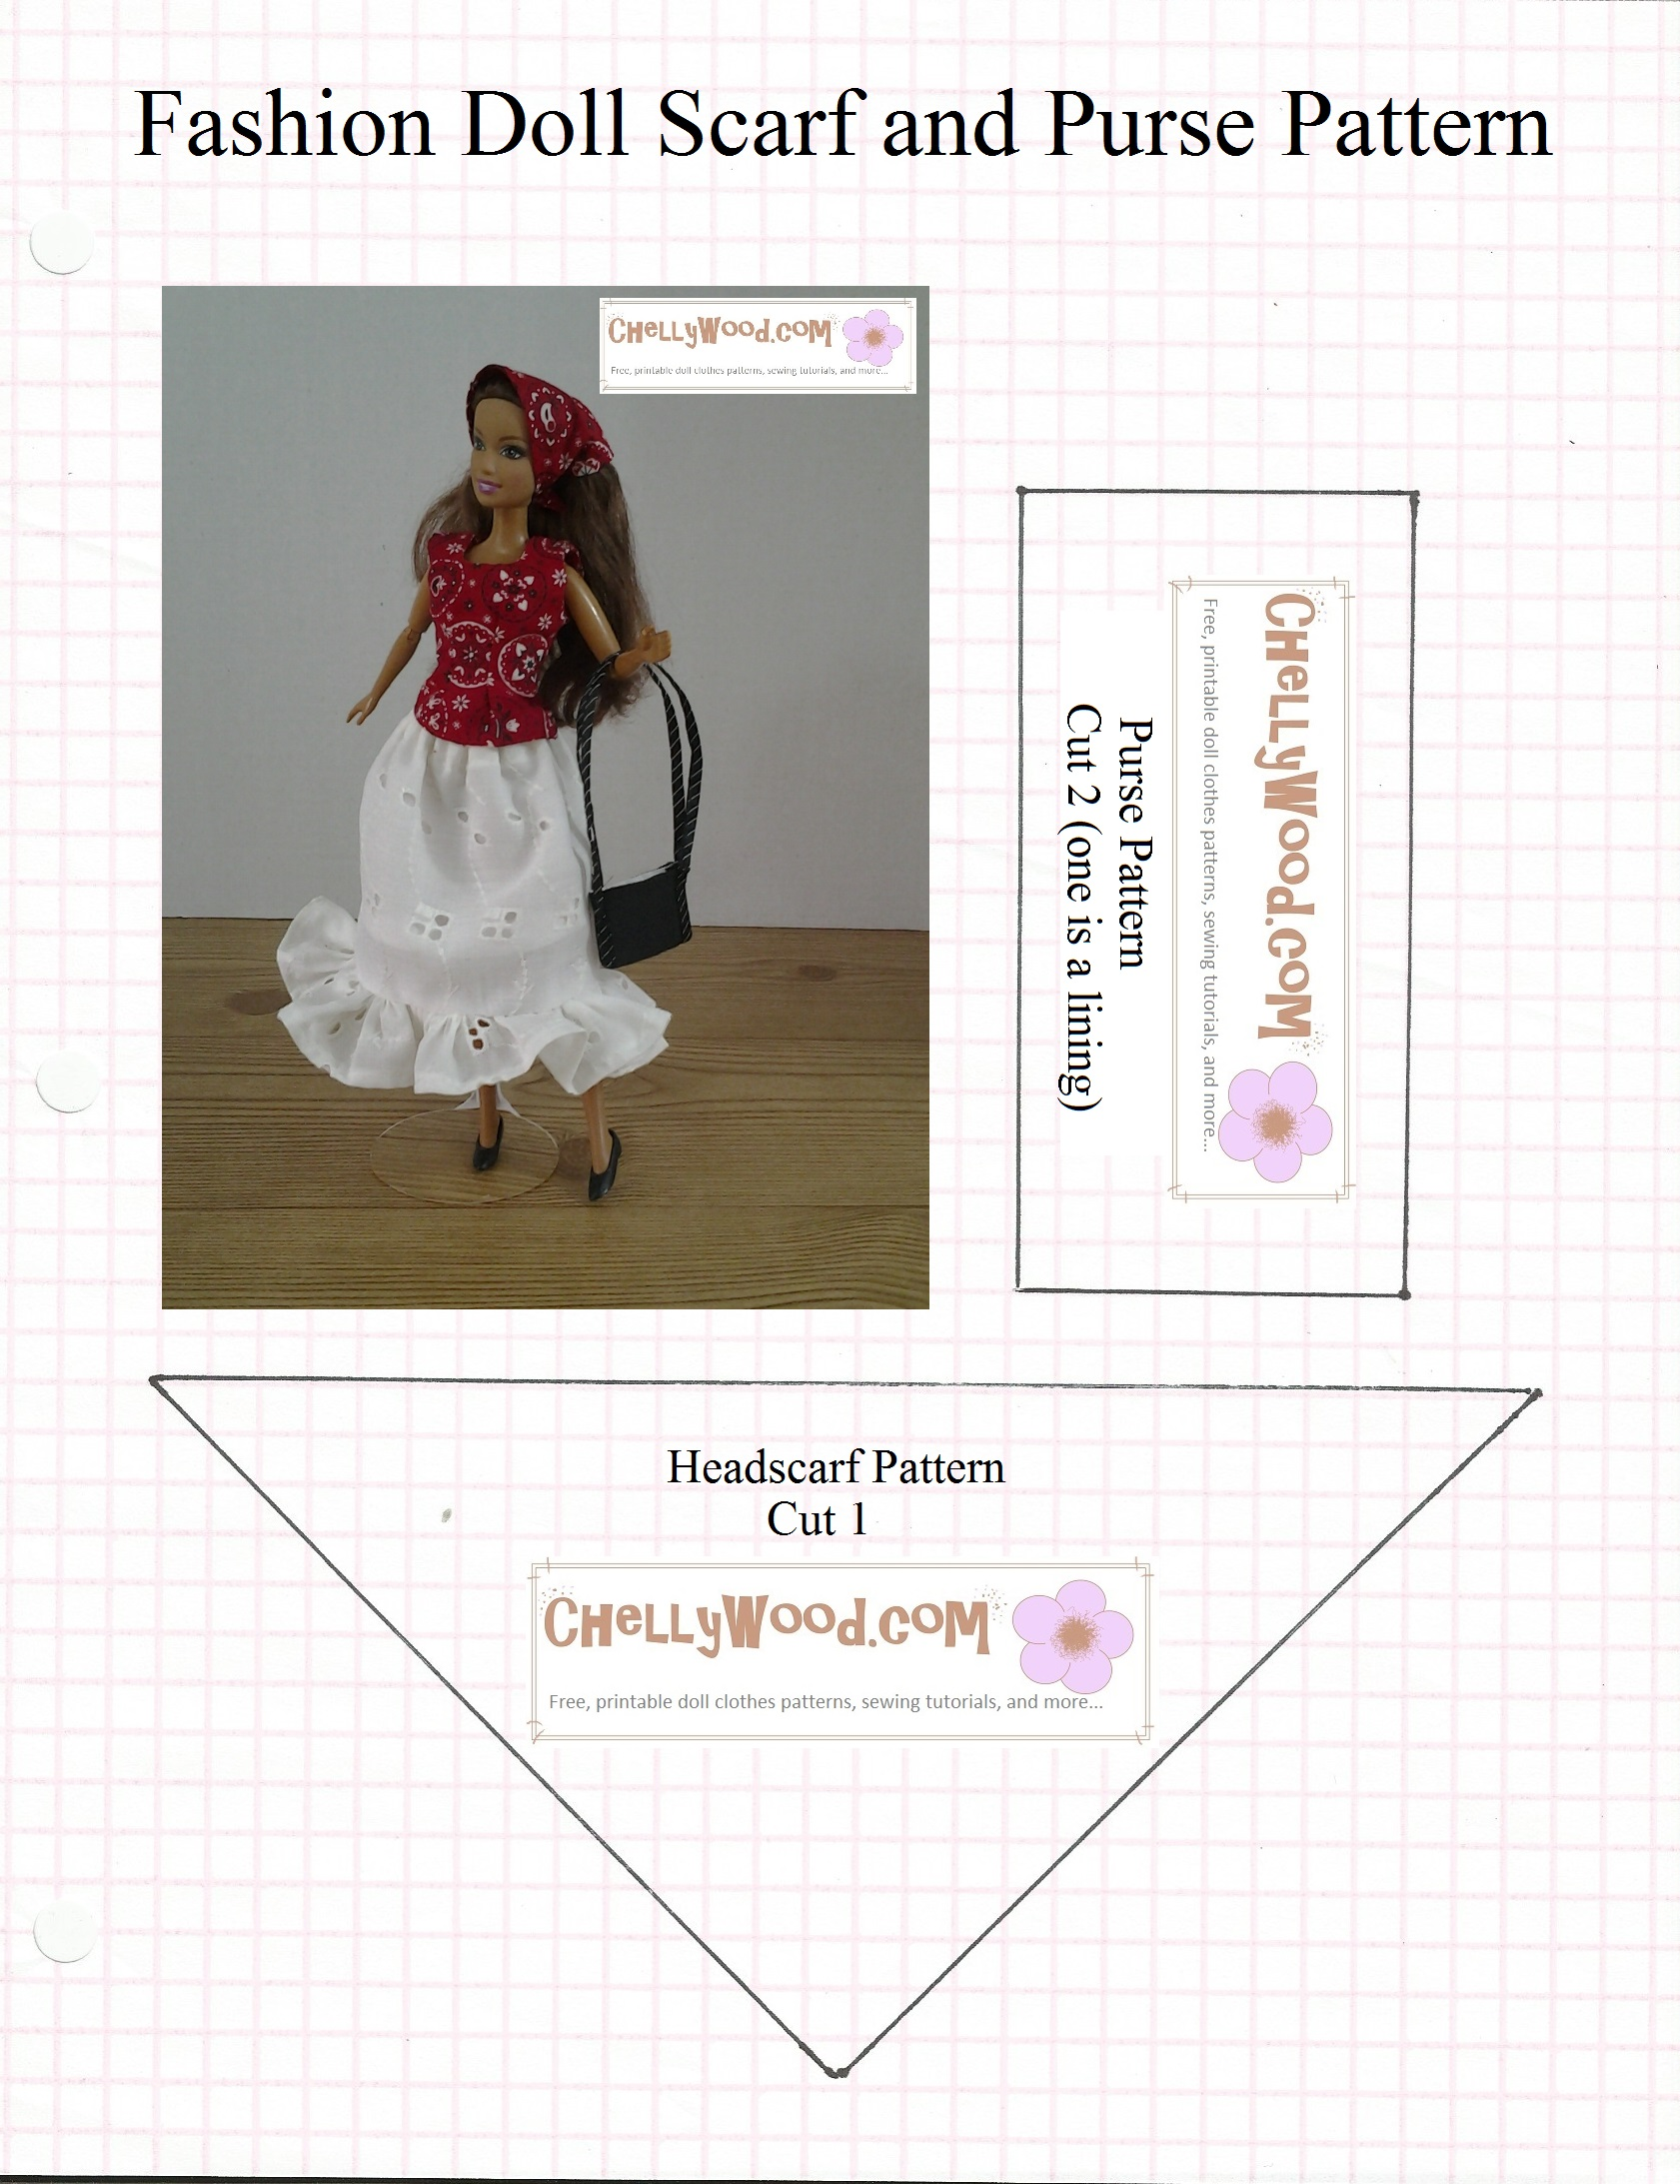 Headscarf pattern for fashiondolls is free chellywood for making this easy to sew headscarf jeuxipadfo Gallery